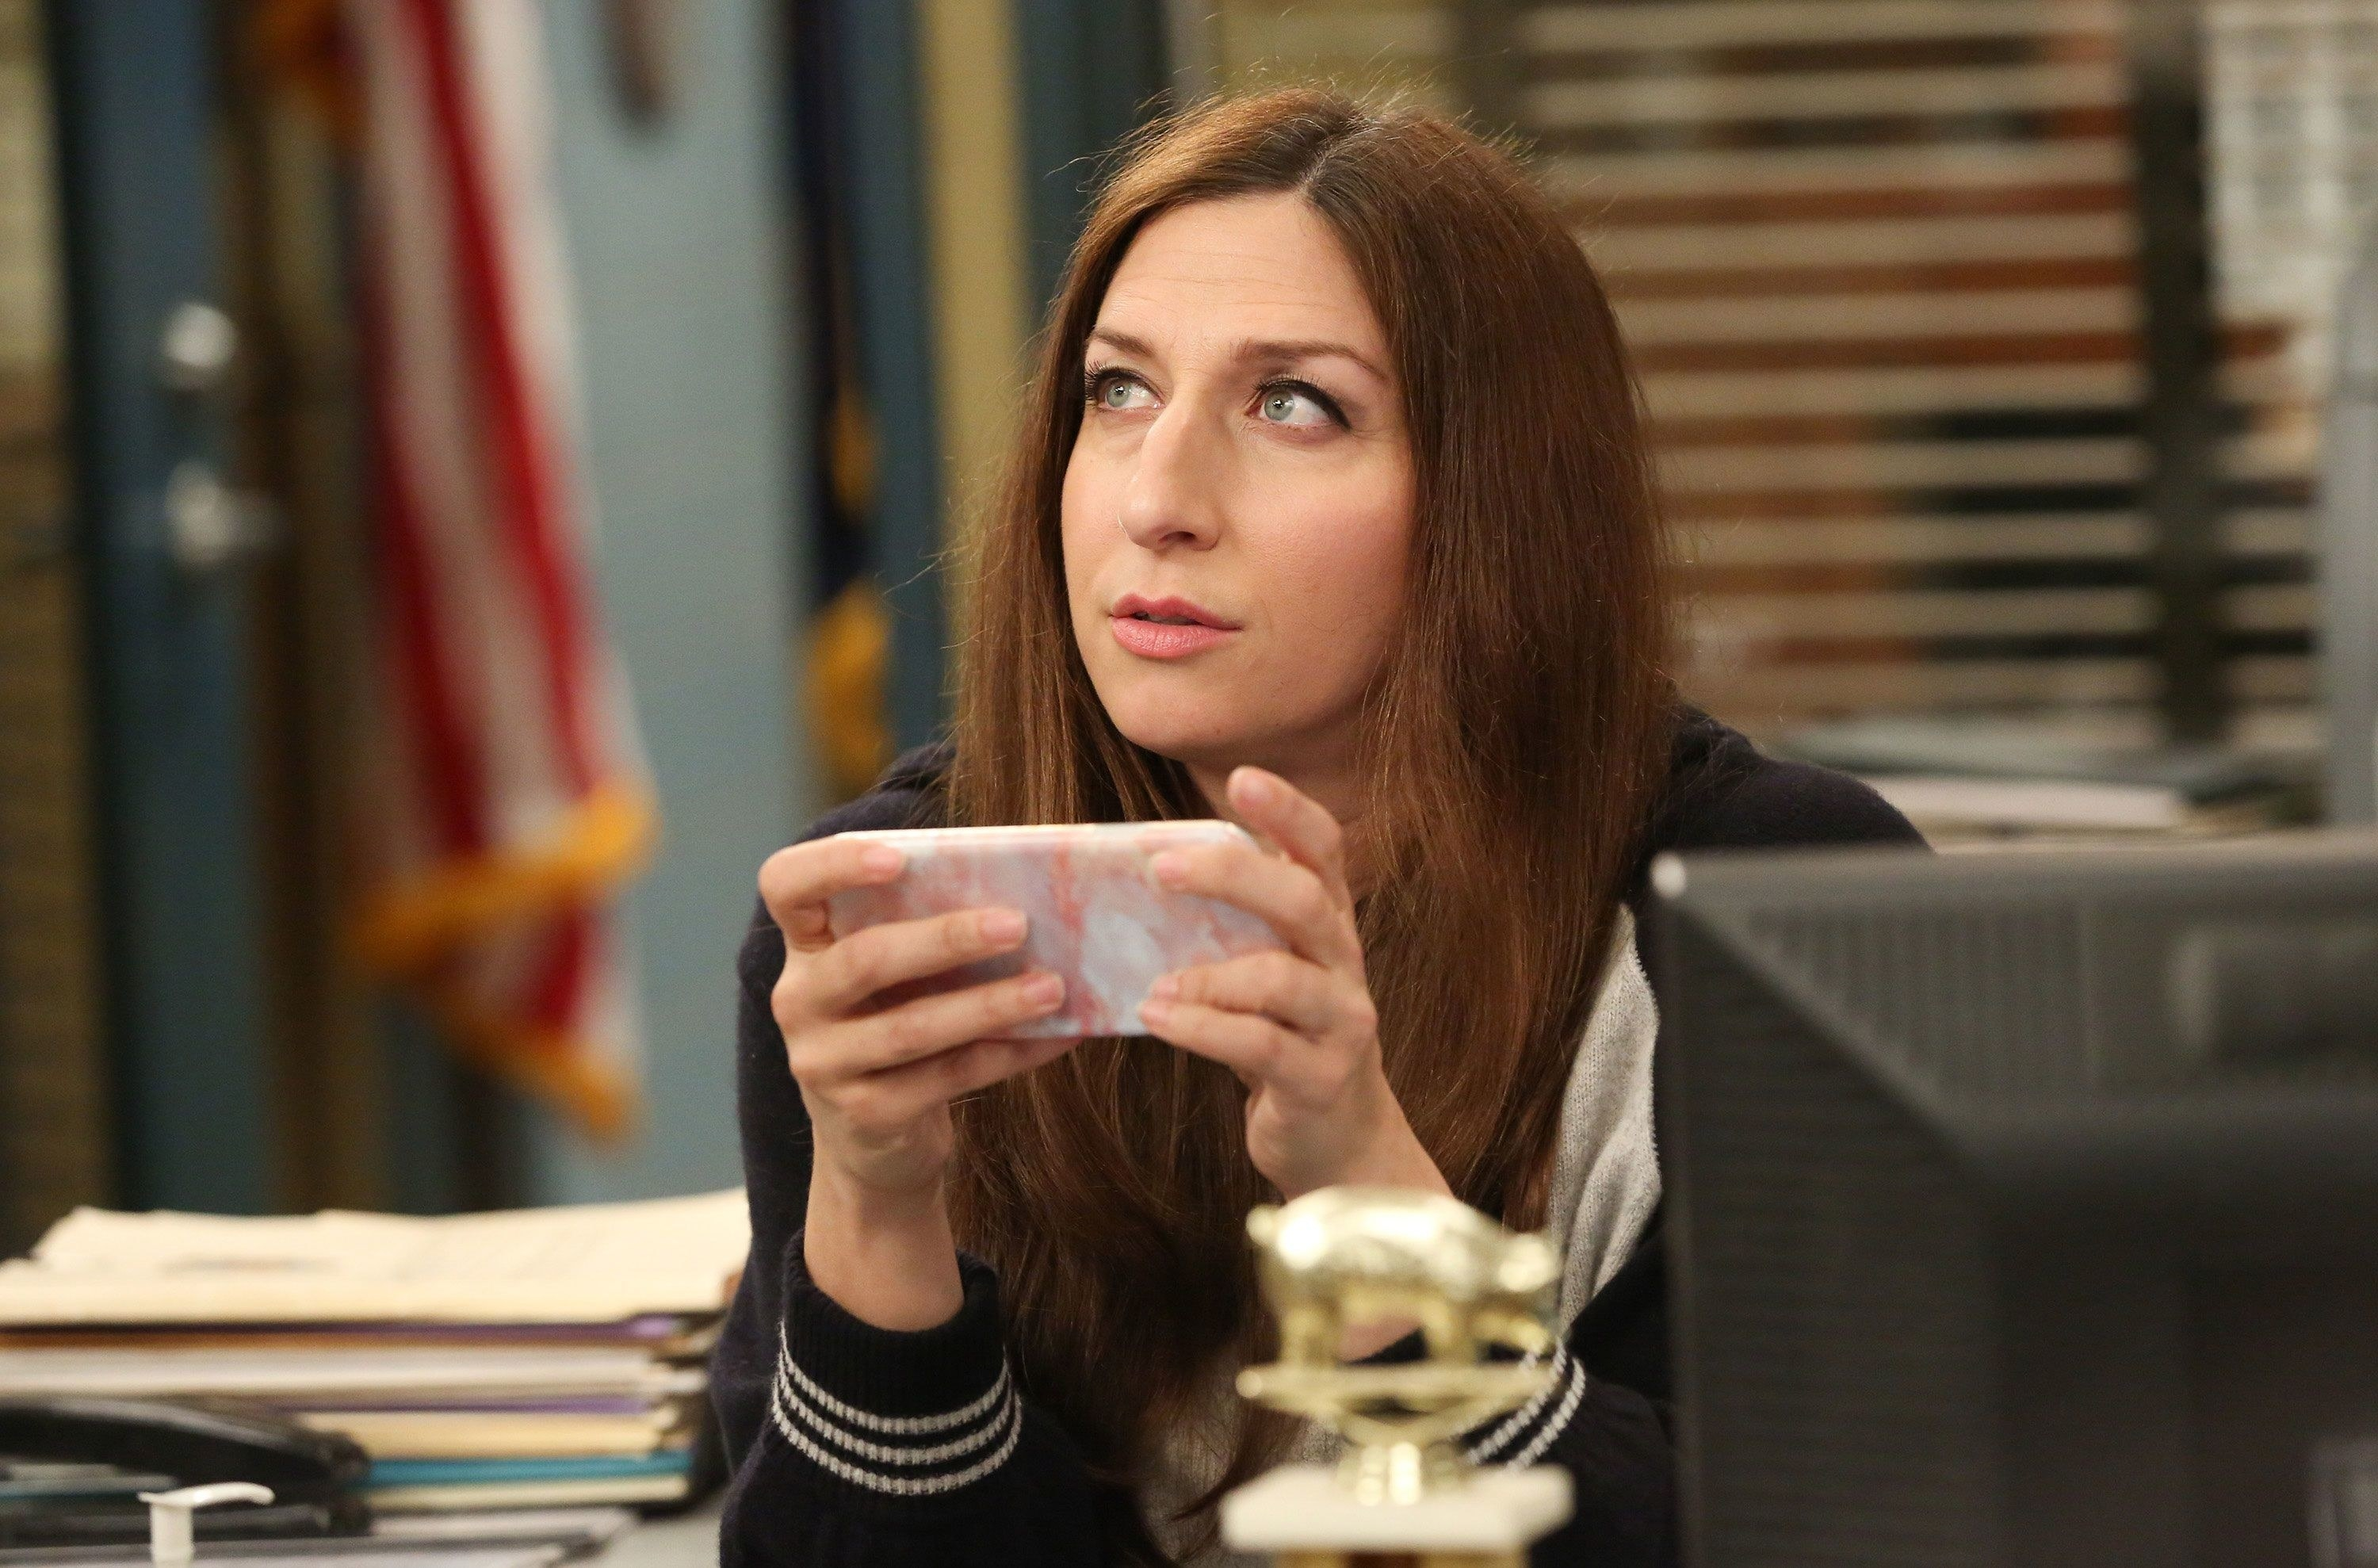 Gina is sitting at her desk while holding her phone to watch something on it; she is looking off into the distance